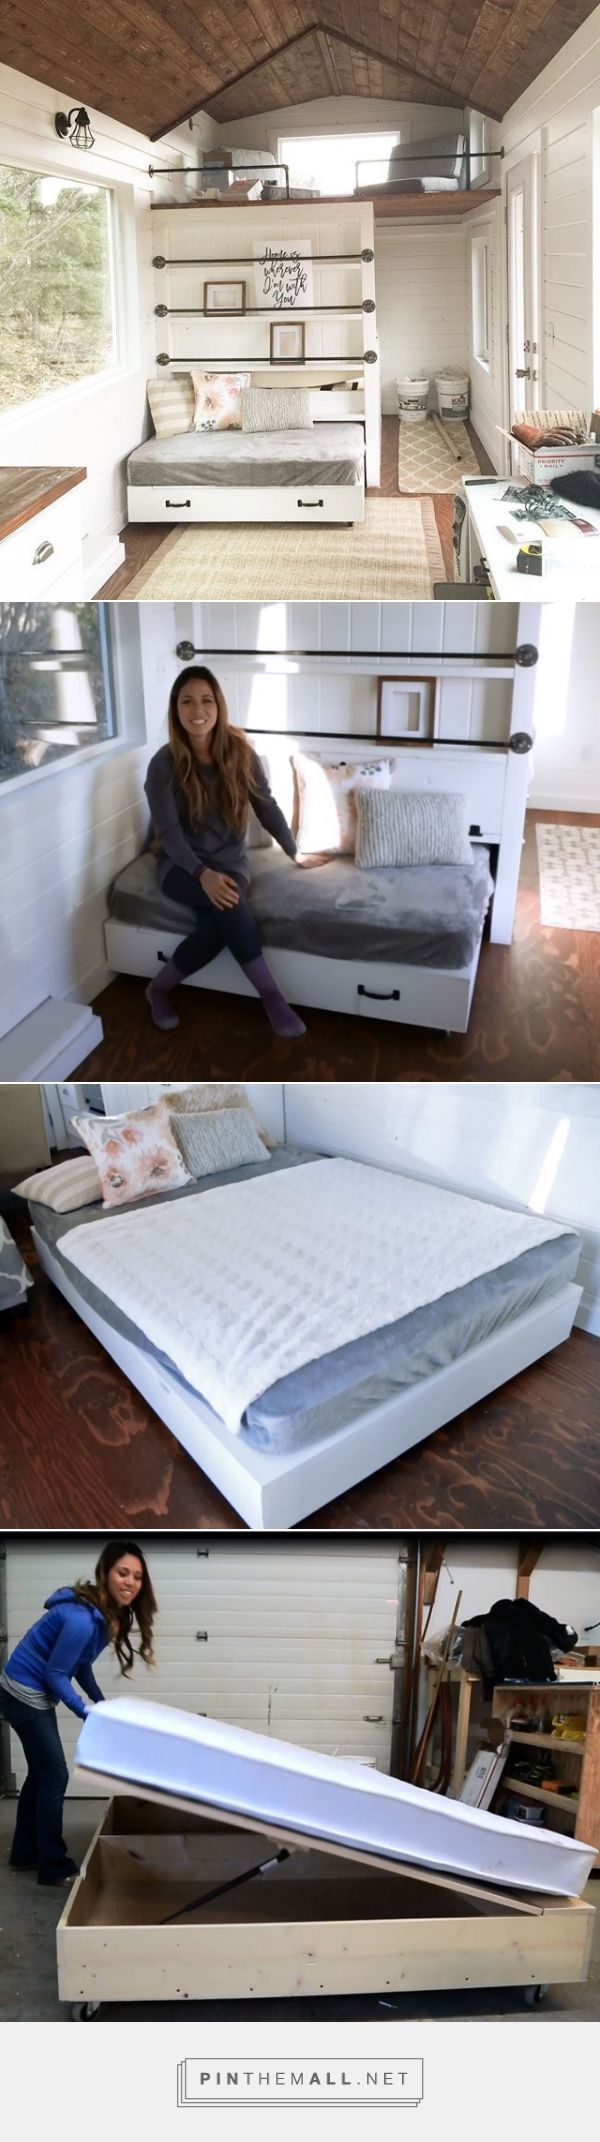 DIY Lift Storage Bed Trundle (Full-size) - Converts to Sofa for Tiny House Use